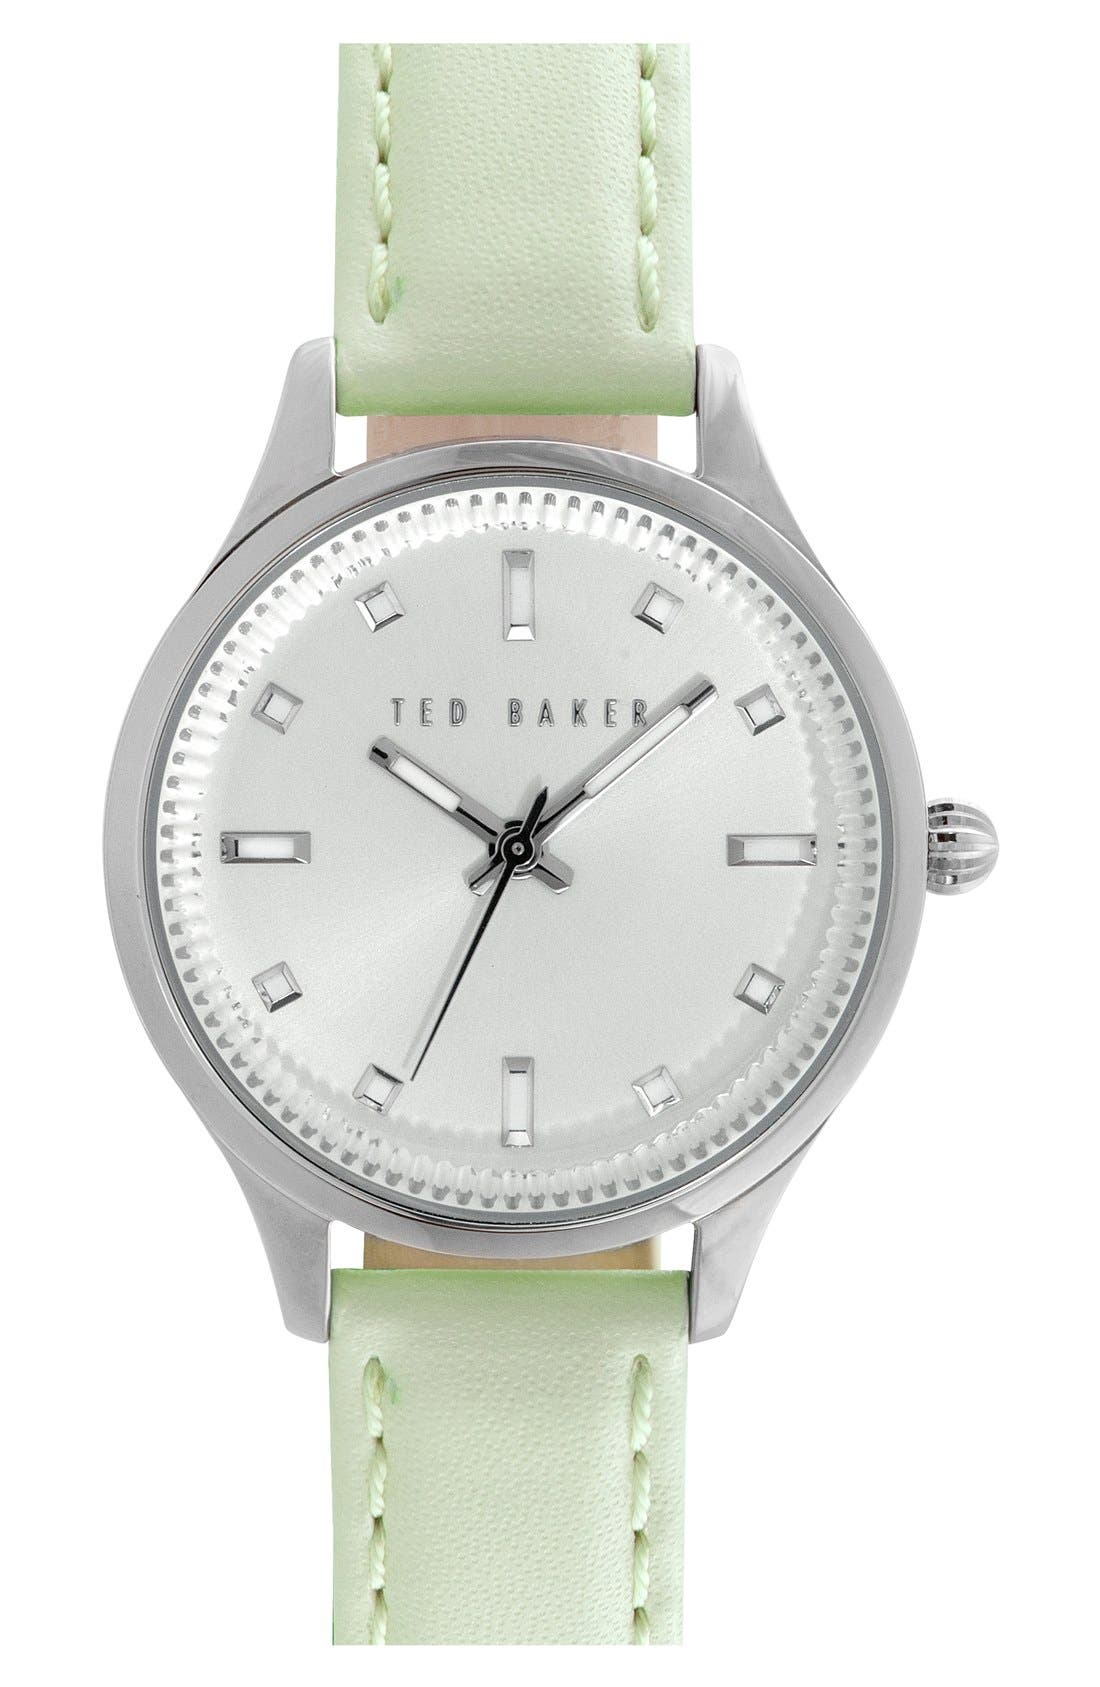 TED BAKER LONDON Dress Sport Leather Strap Watch, 32mm